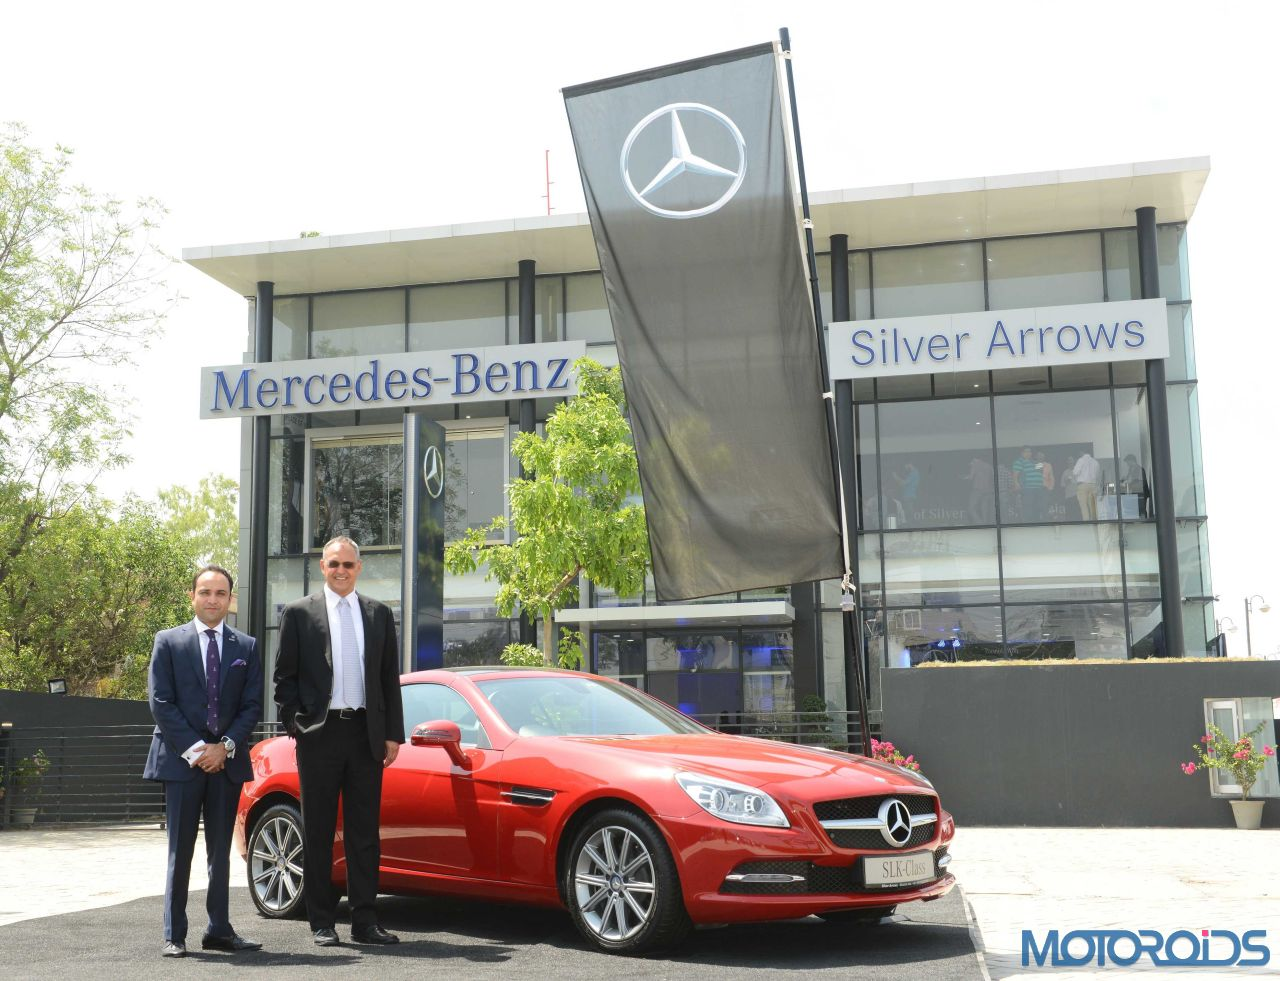 Mercedes benz expands reach into delhi with new dealership for Mercedes benz dealers